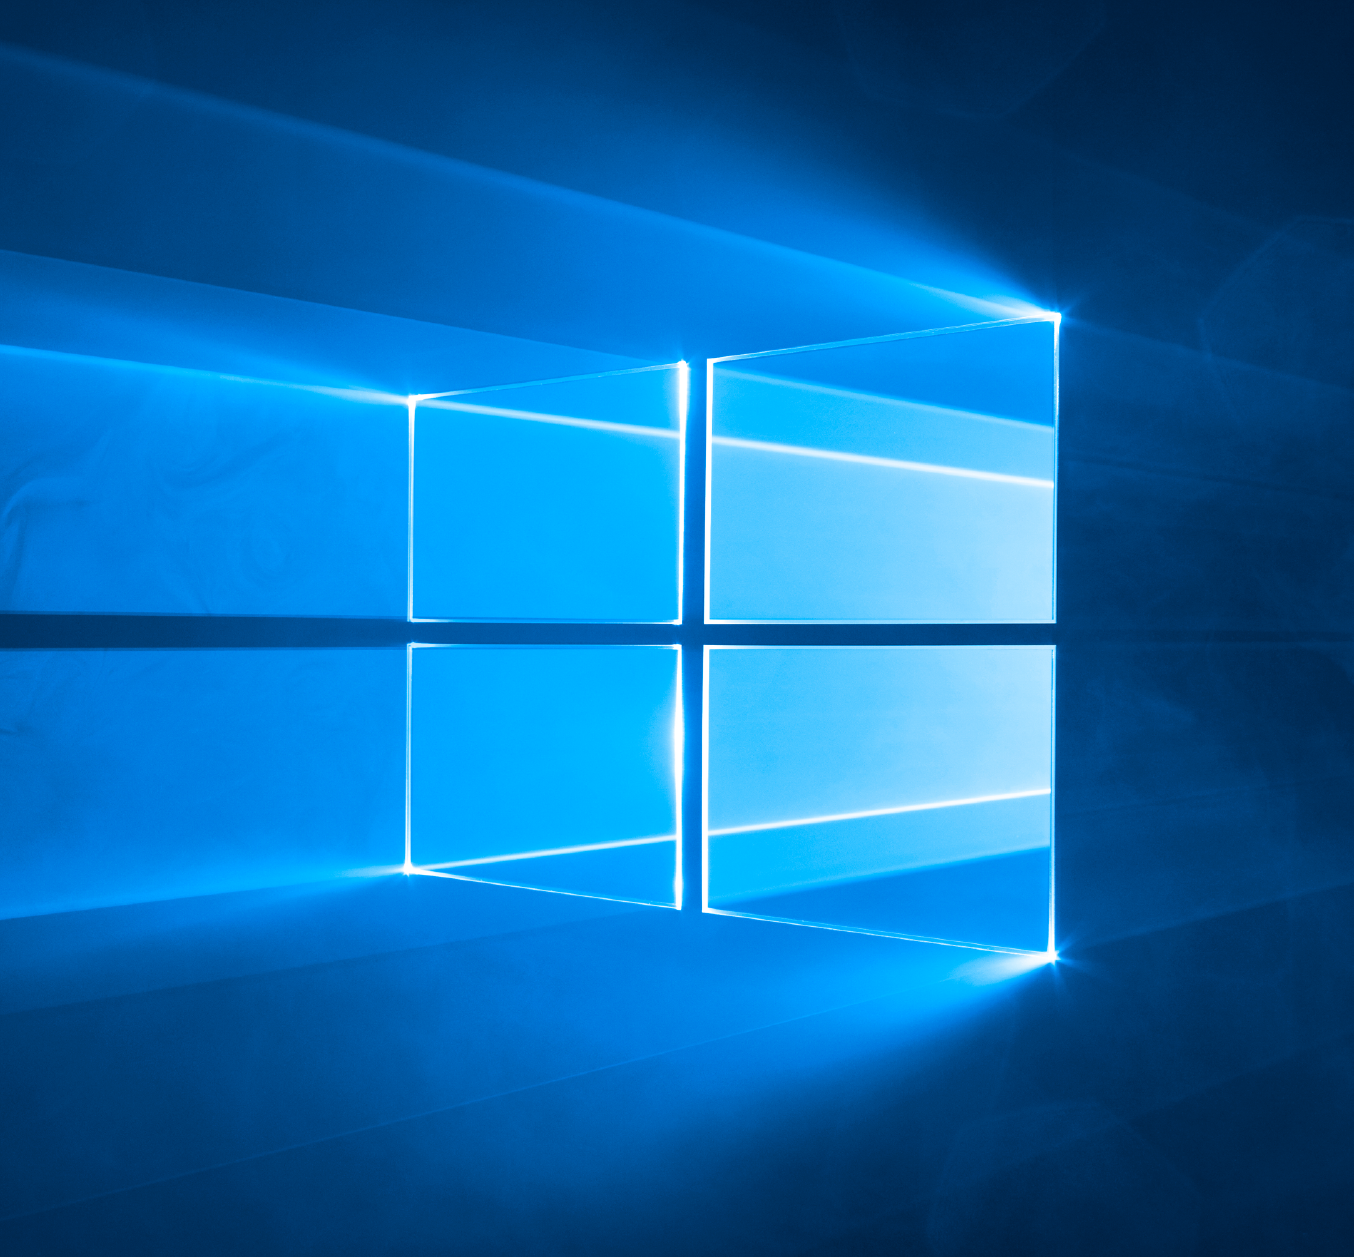 Windows 10: Embrace or Avoid?